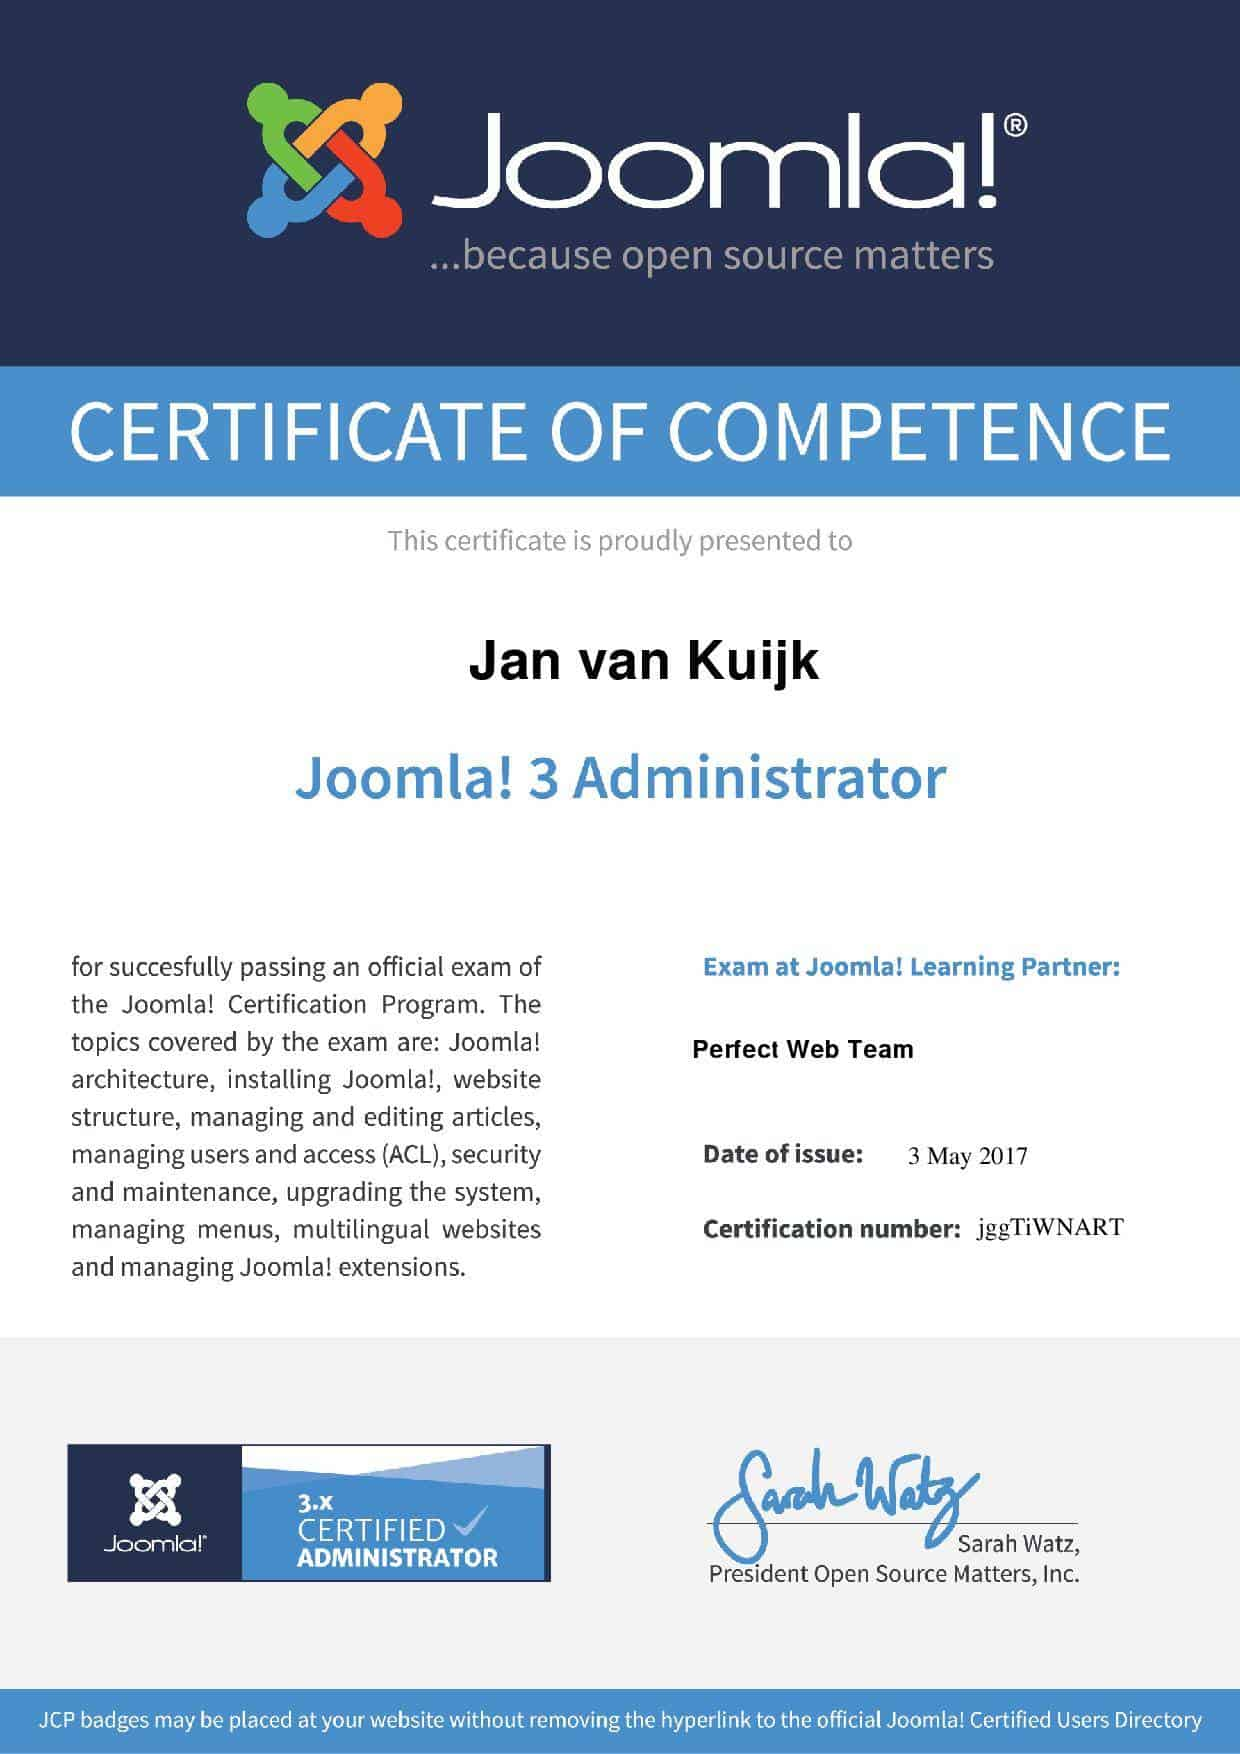 Joomla 3 Administrator Certificate page 001